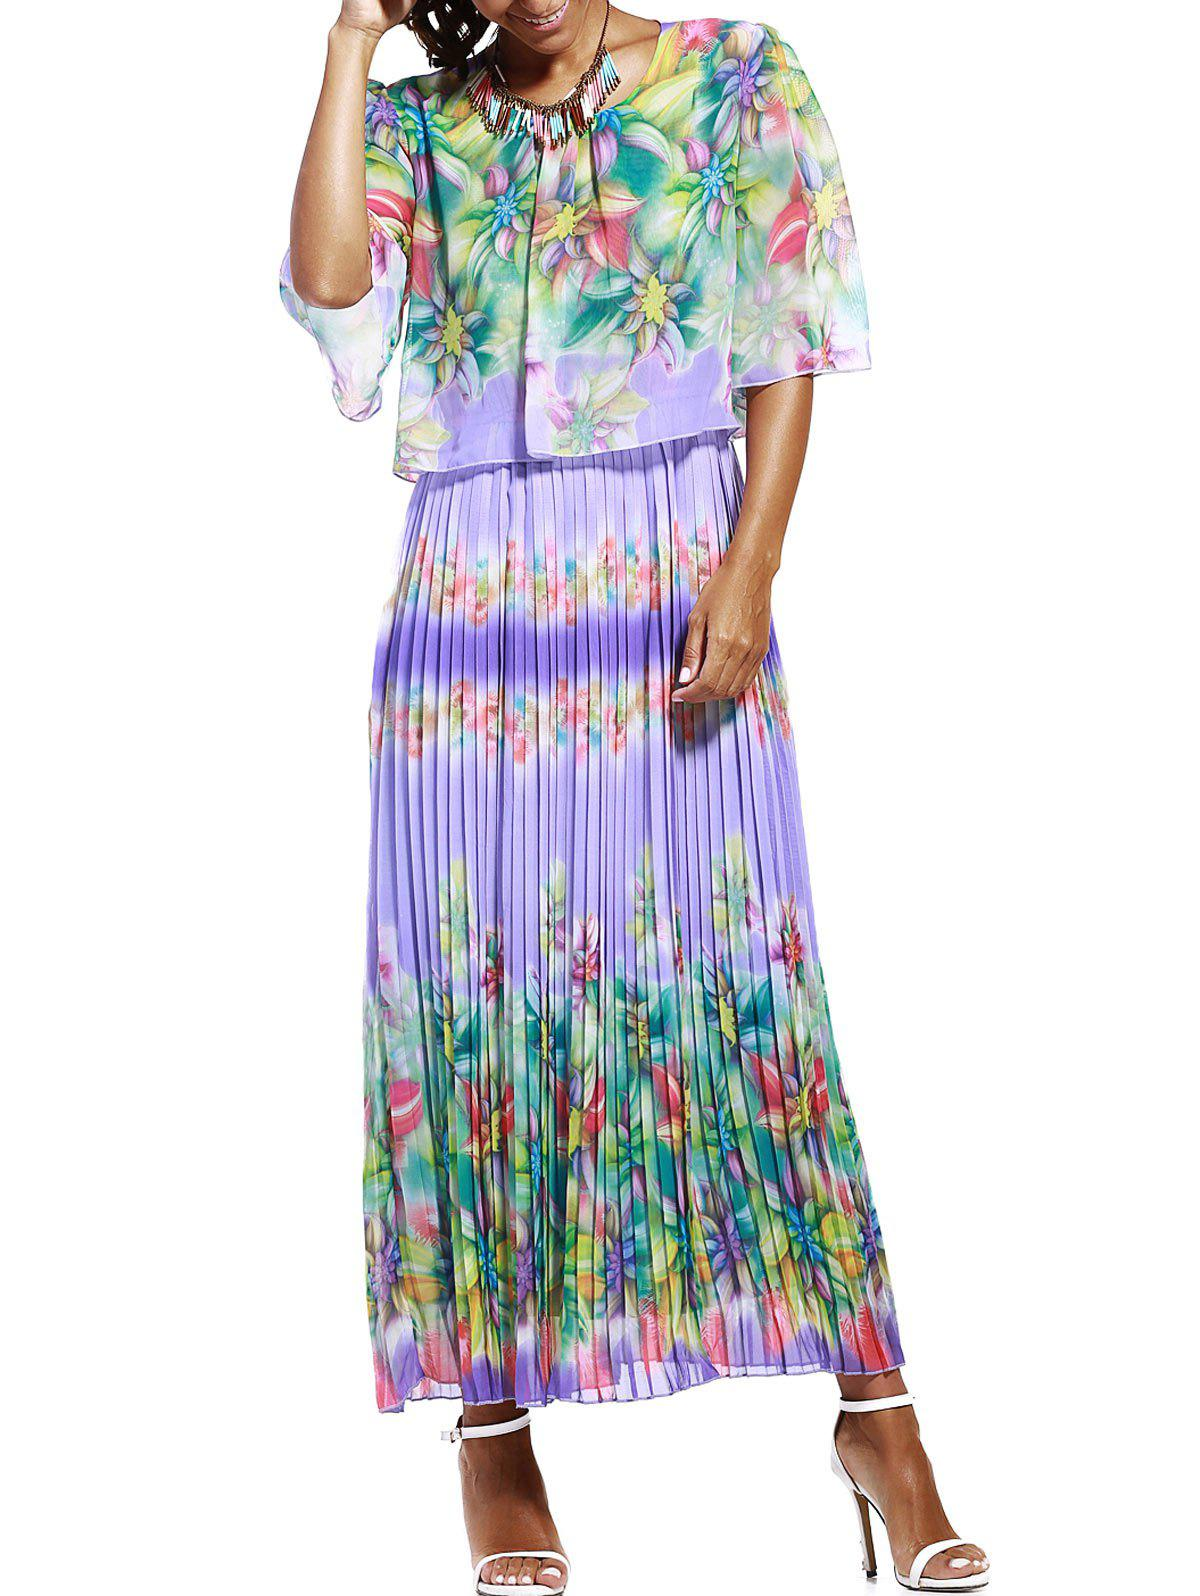 Floral Print Pleated Chiffon Maxi Dress - LIGHT PURPLE 3XL